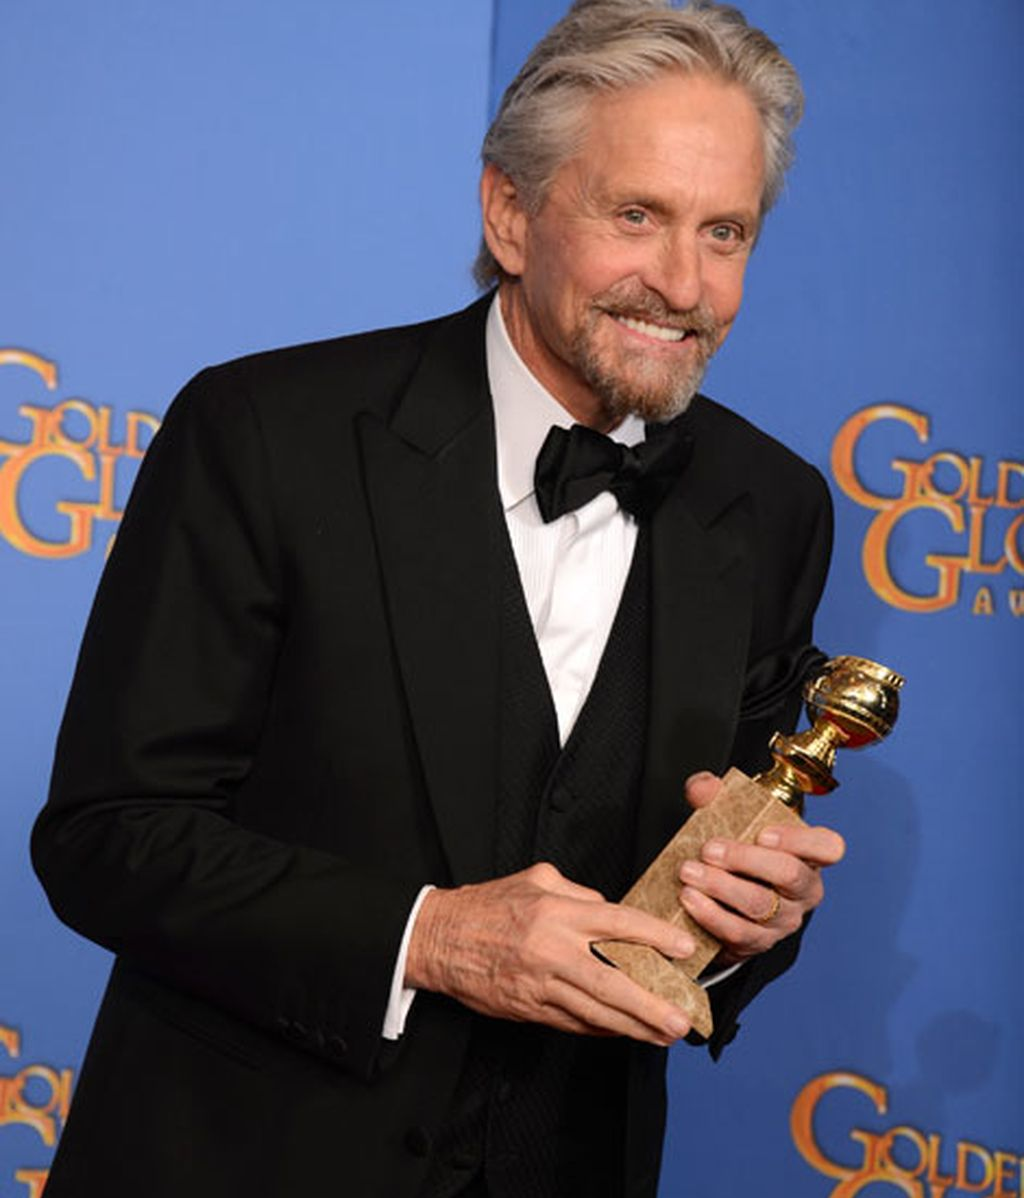 Michael Douglas, mejor actor de miniserie